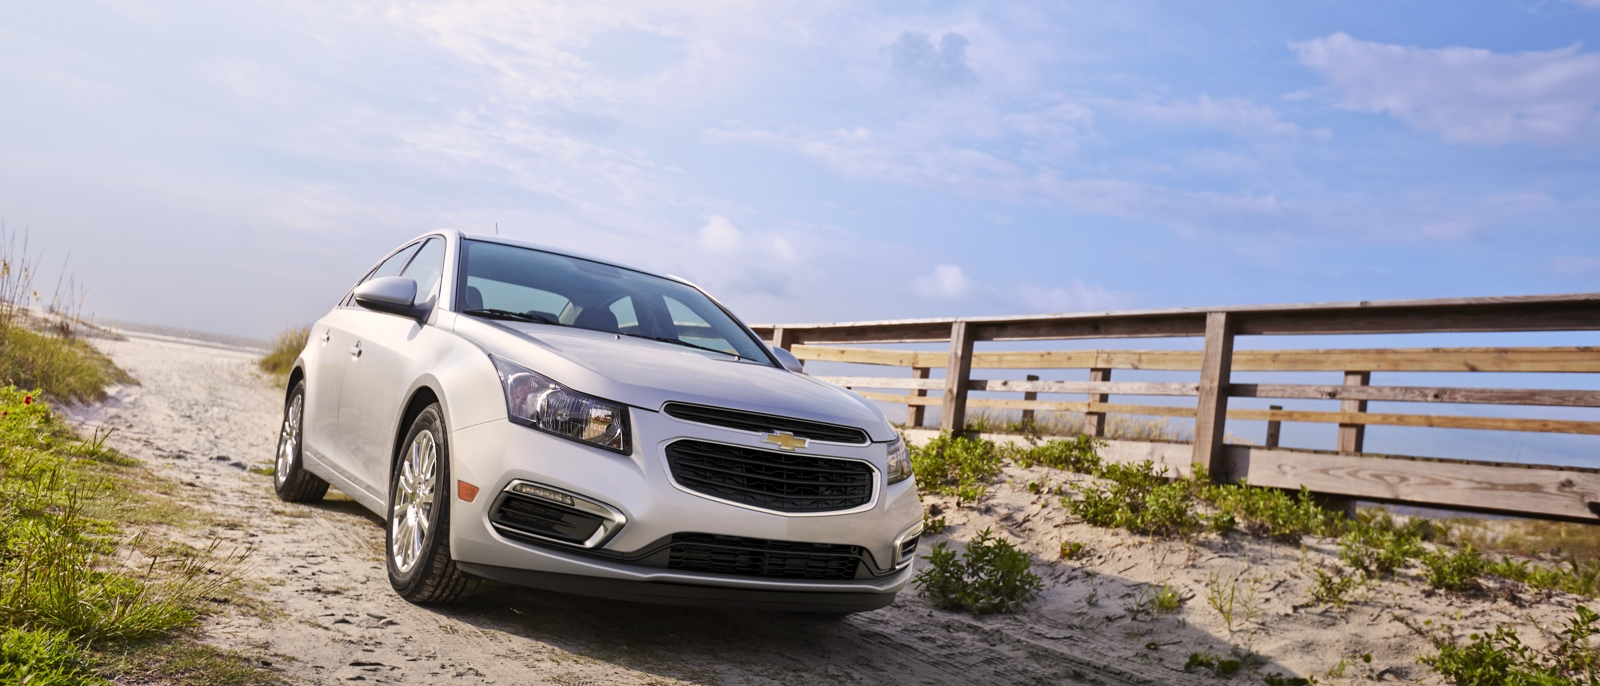 2015 Chevrolet Cruze Front/Side Exterior Image Silver